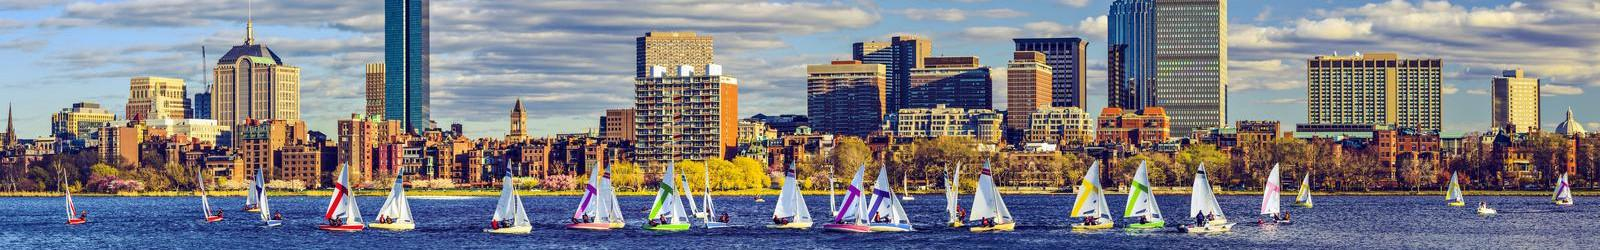 Career Counseling therapists in Boston, Massachusetts